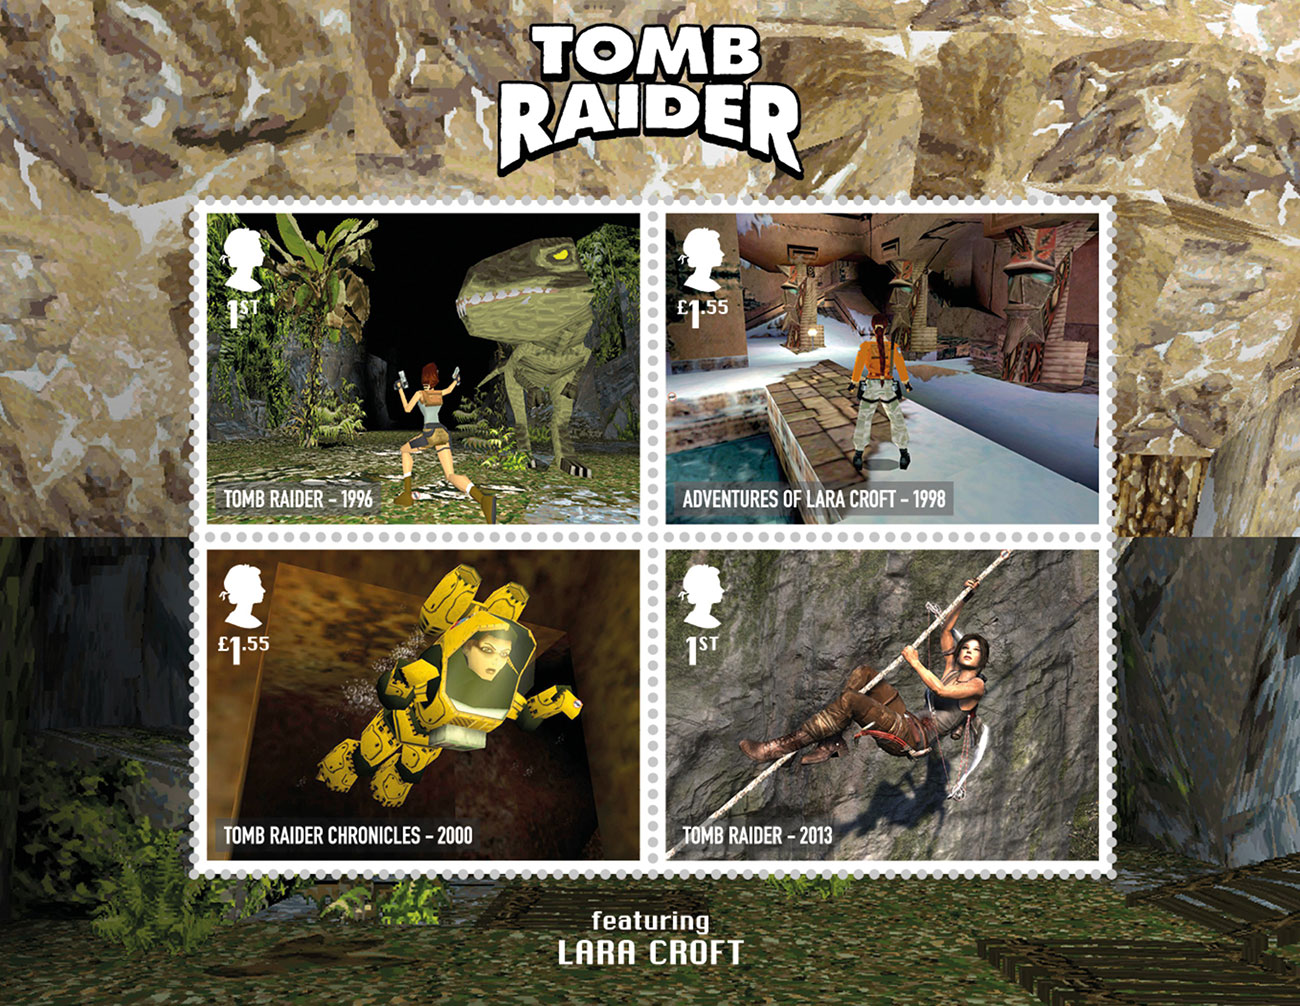 Royal Mail retro gaming stamps: Tomb Raider